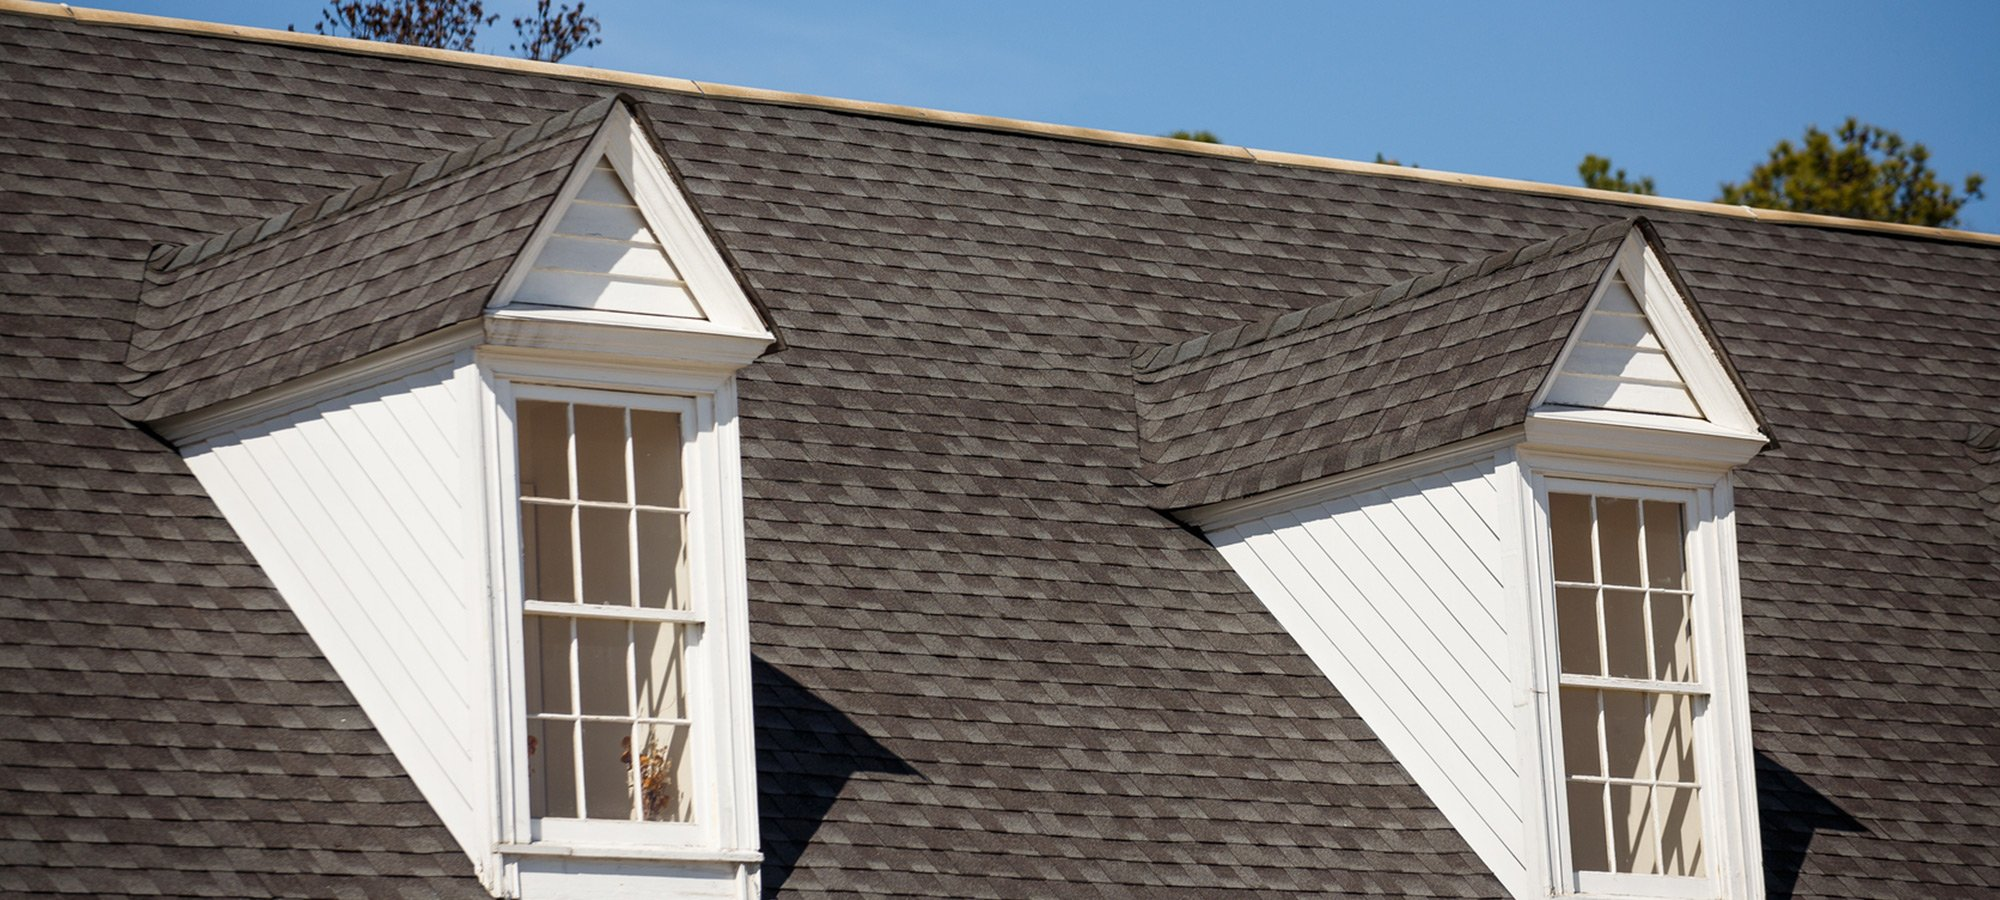 Long Island Roofing Services